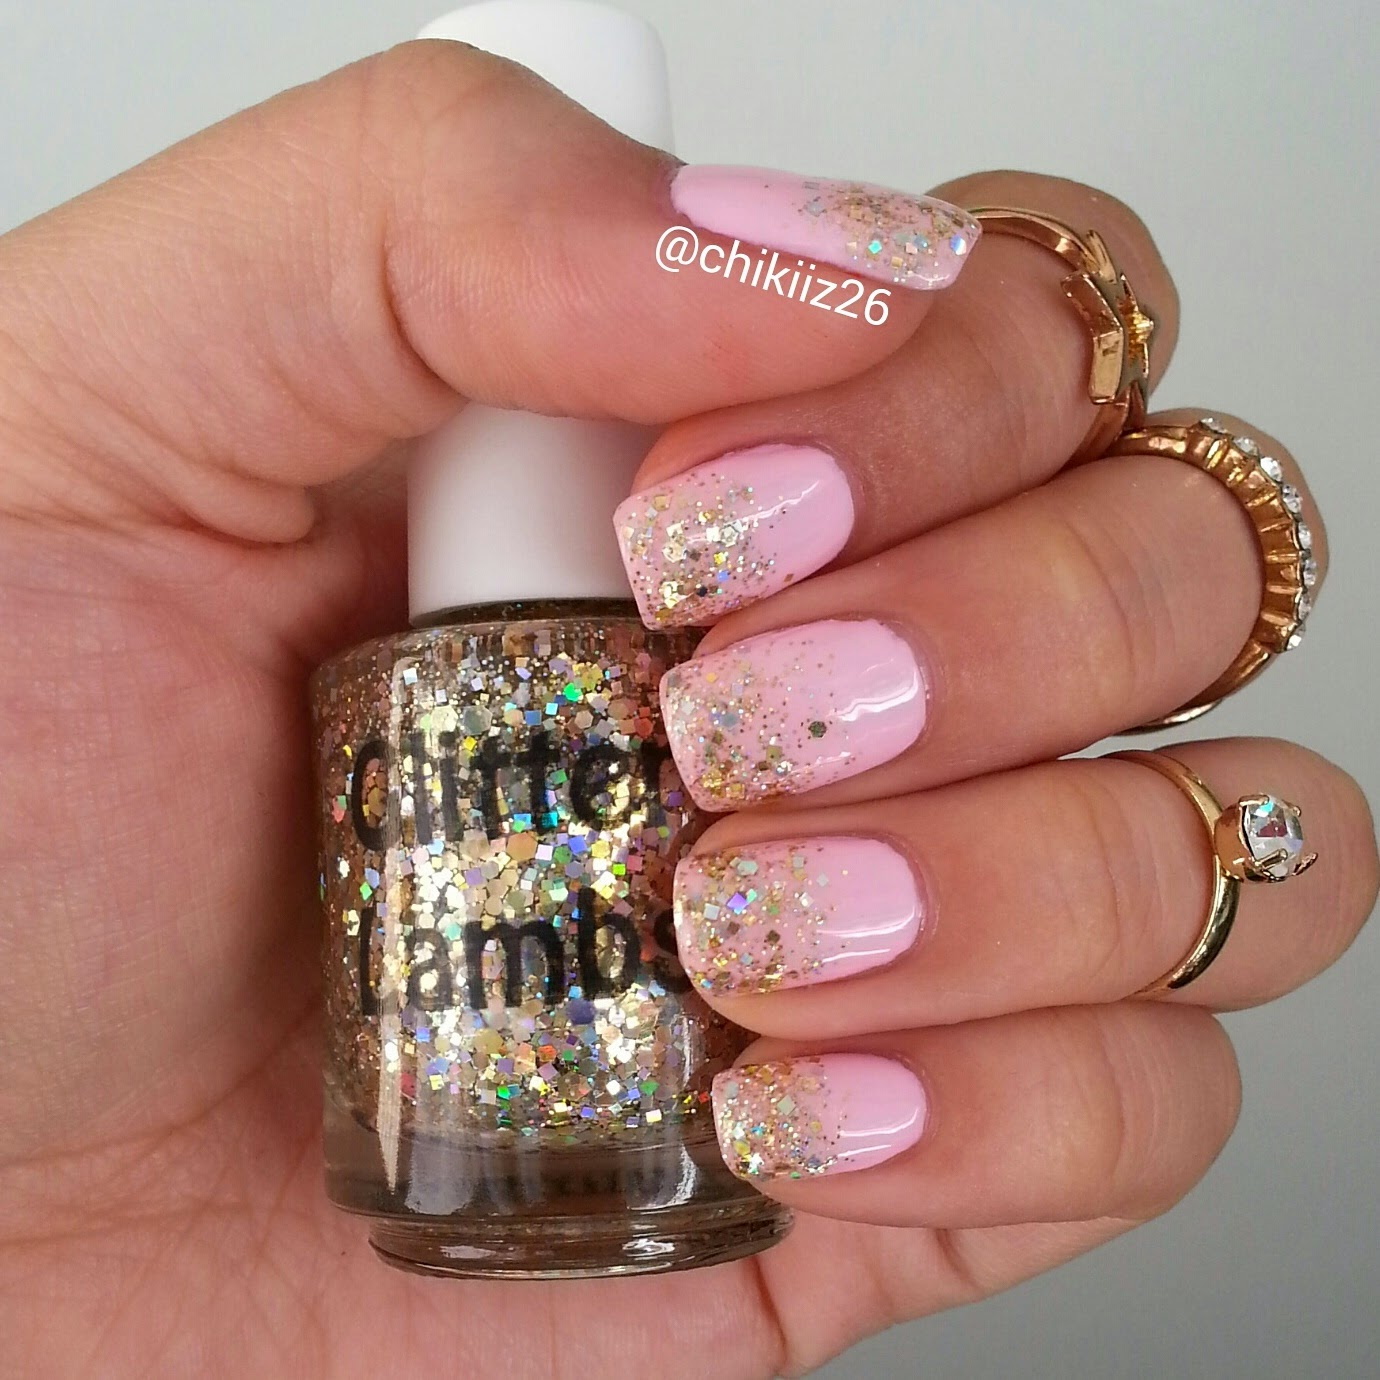 Million Dollar Gradient Glitter Lambs Nail Polish Worn by @Chikiiz26